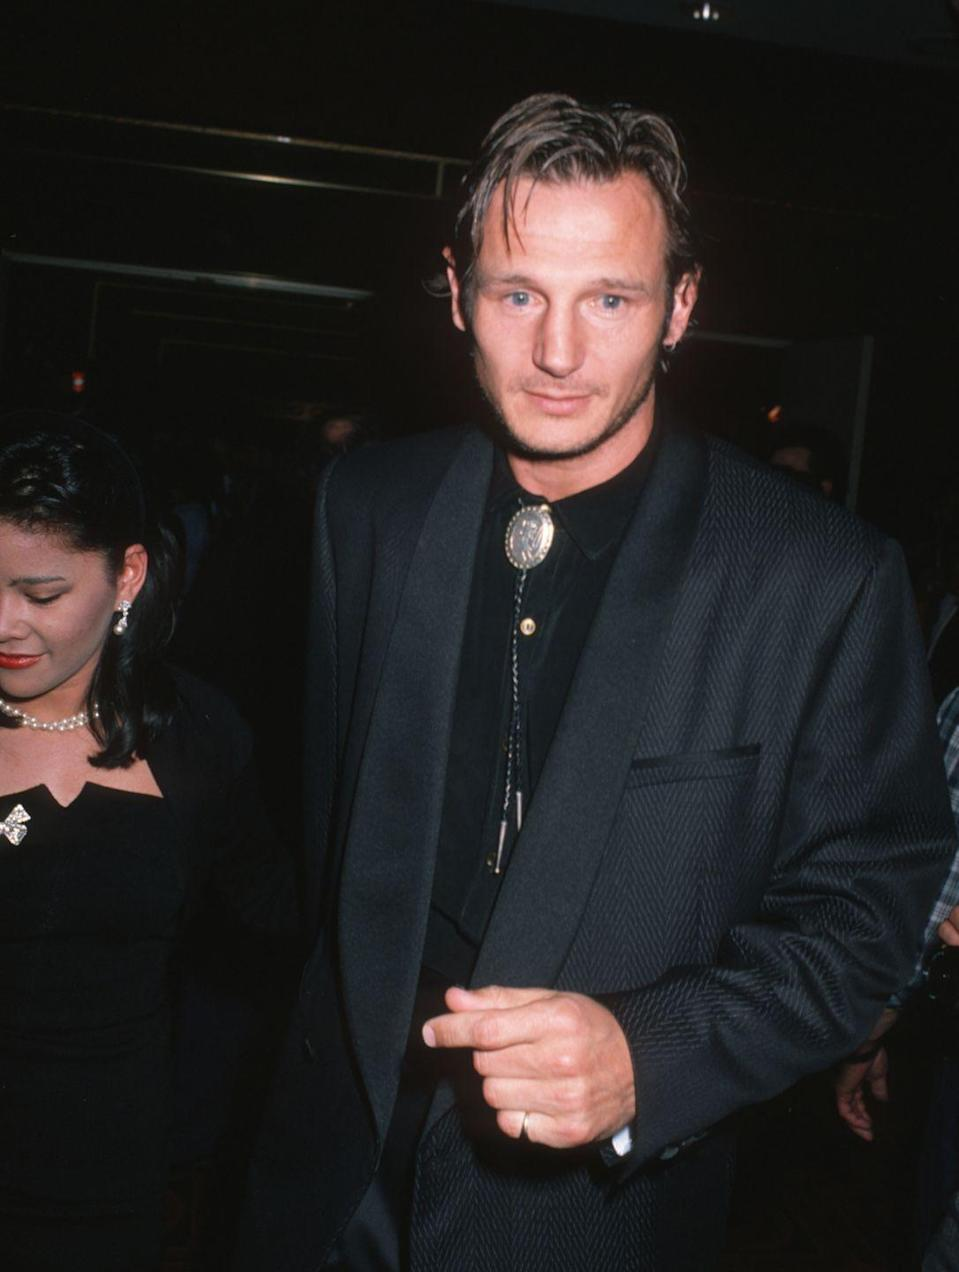 <p>The Irish actor's hairstyle has remained nearly unchanged across the decades. Around the time this photo was taken, he was starring alongside Patrick Swayze in <em>Next of Kin.</em></p>